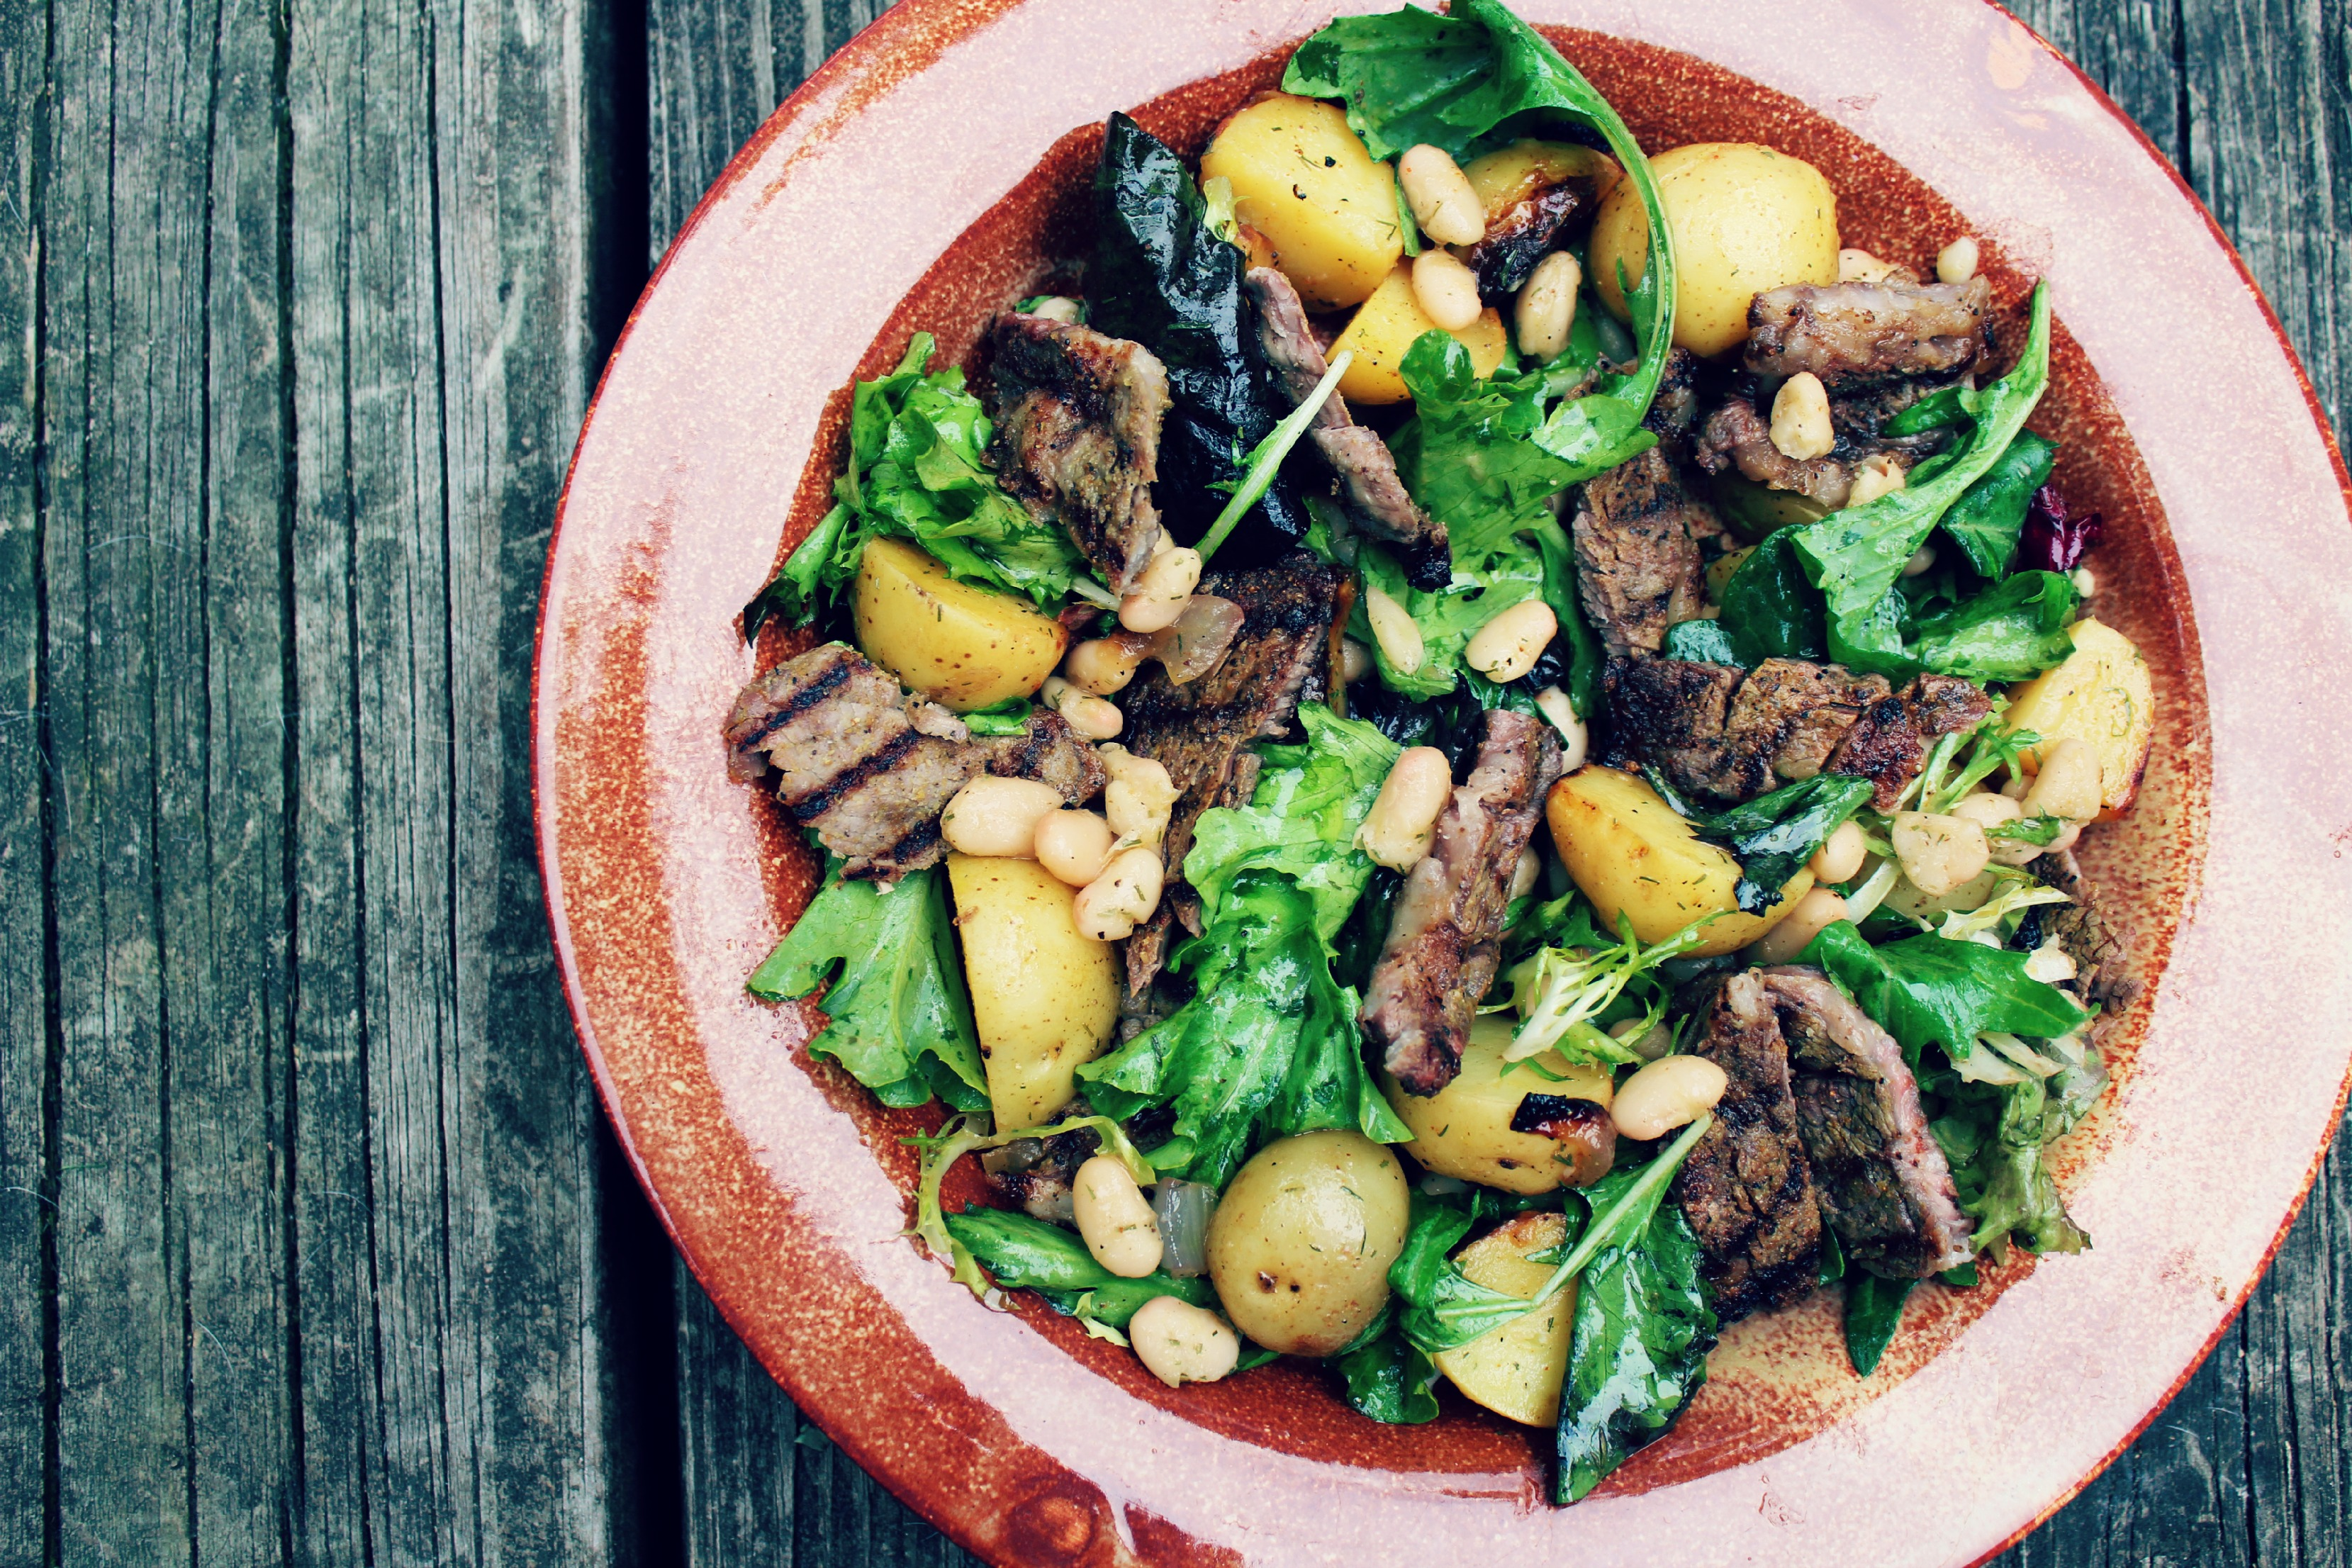 Grilled steak and white bean salad